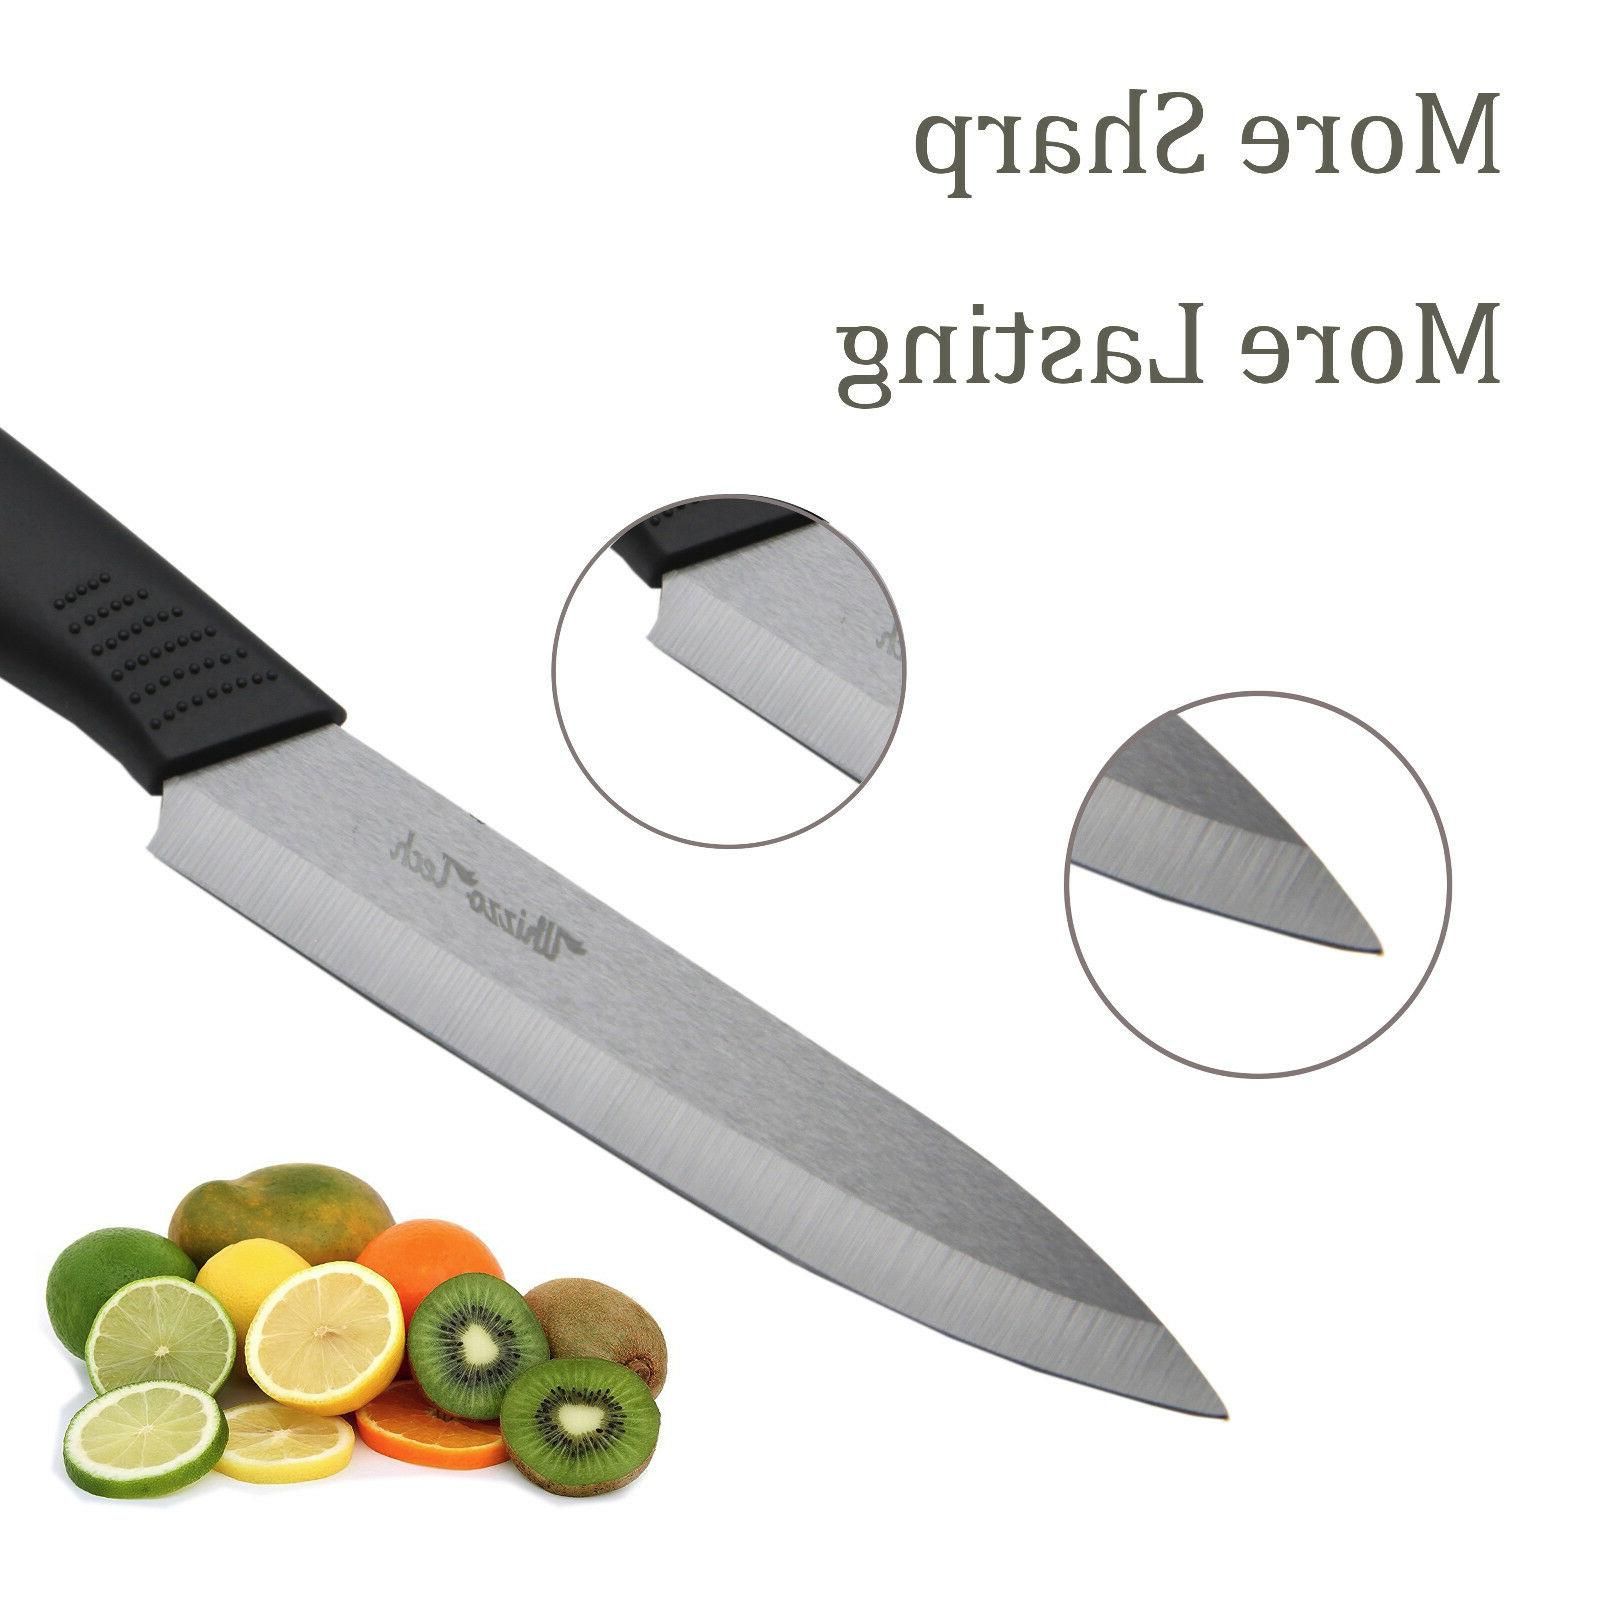 "Ceramic Chef's Kitchen Knives 4"" 5"" Knife Cutlery"